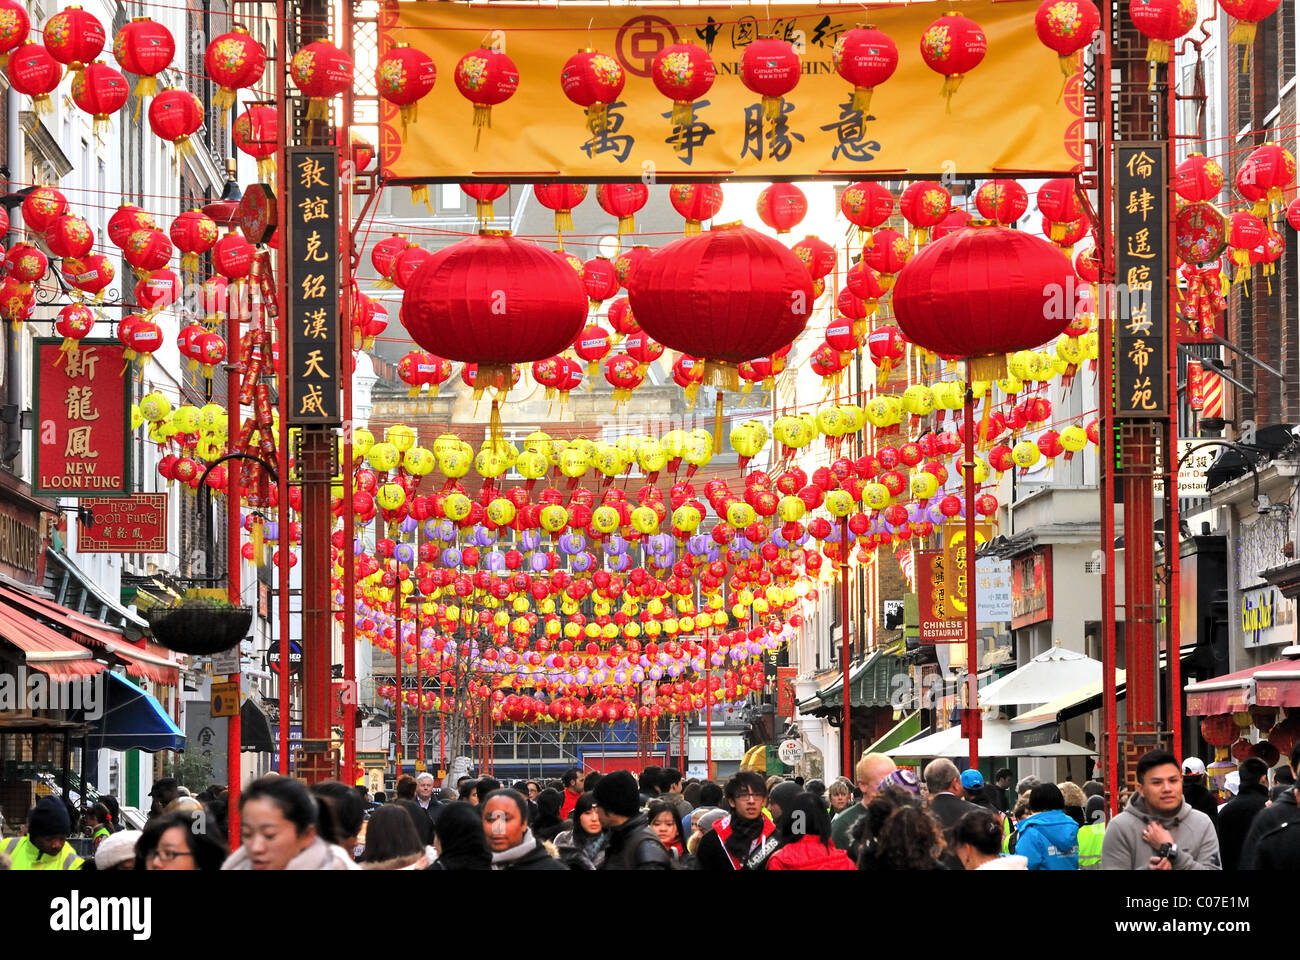 Chinatown London at Chinese new year 2011 - Stock Image